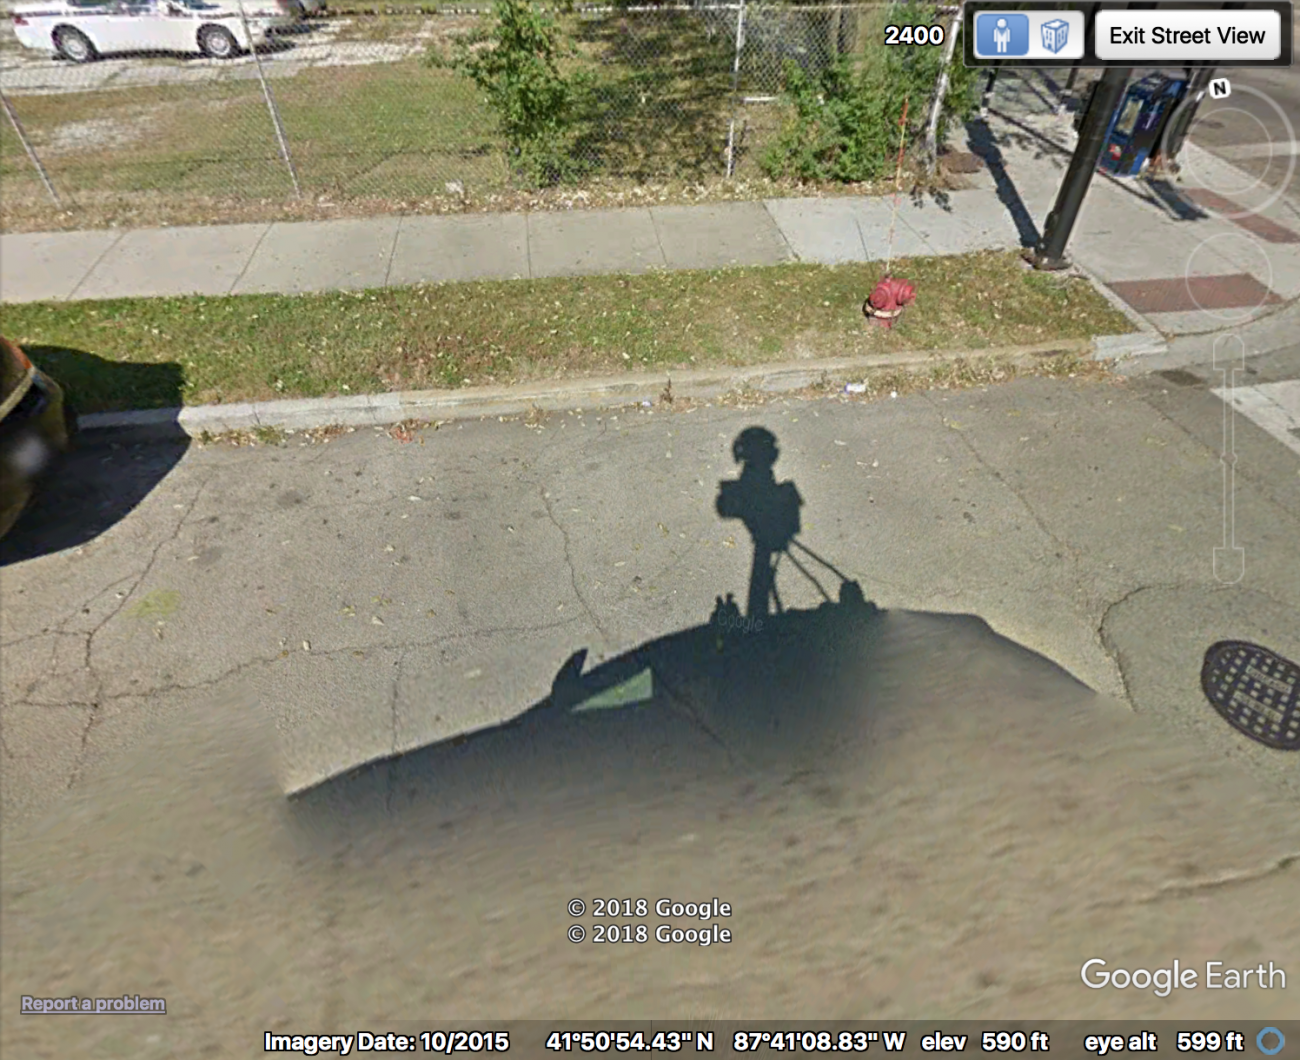 Image of a google satellite image showing the google maps car's shadow in the foreground.